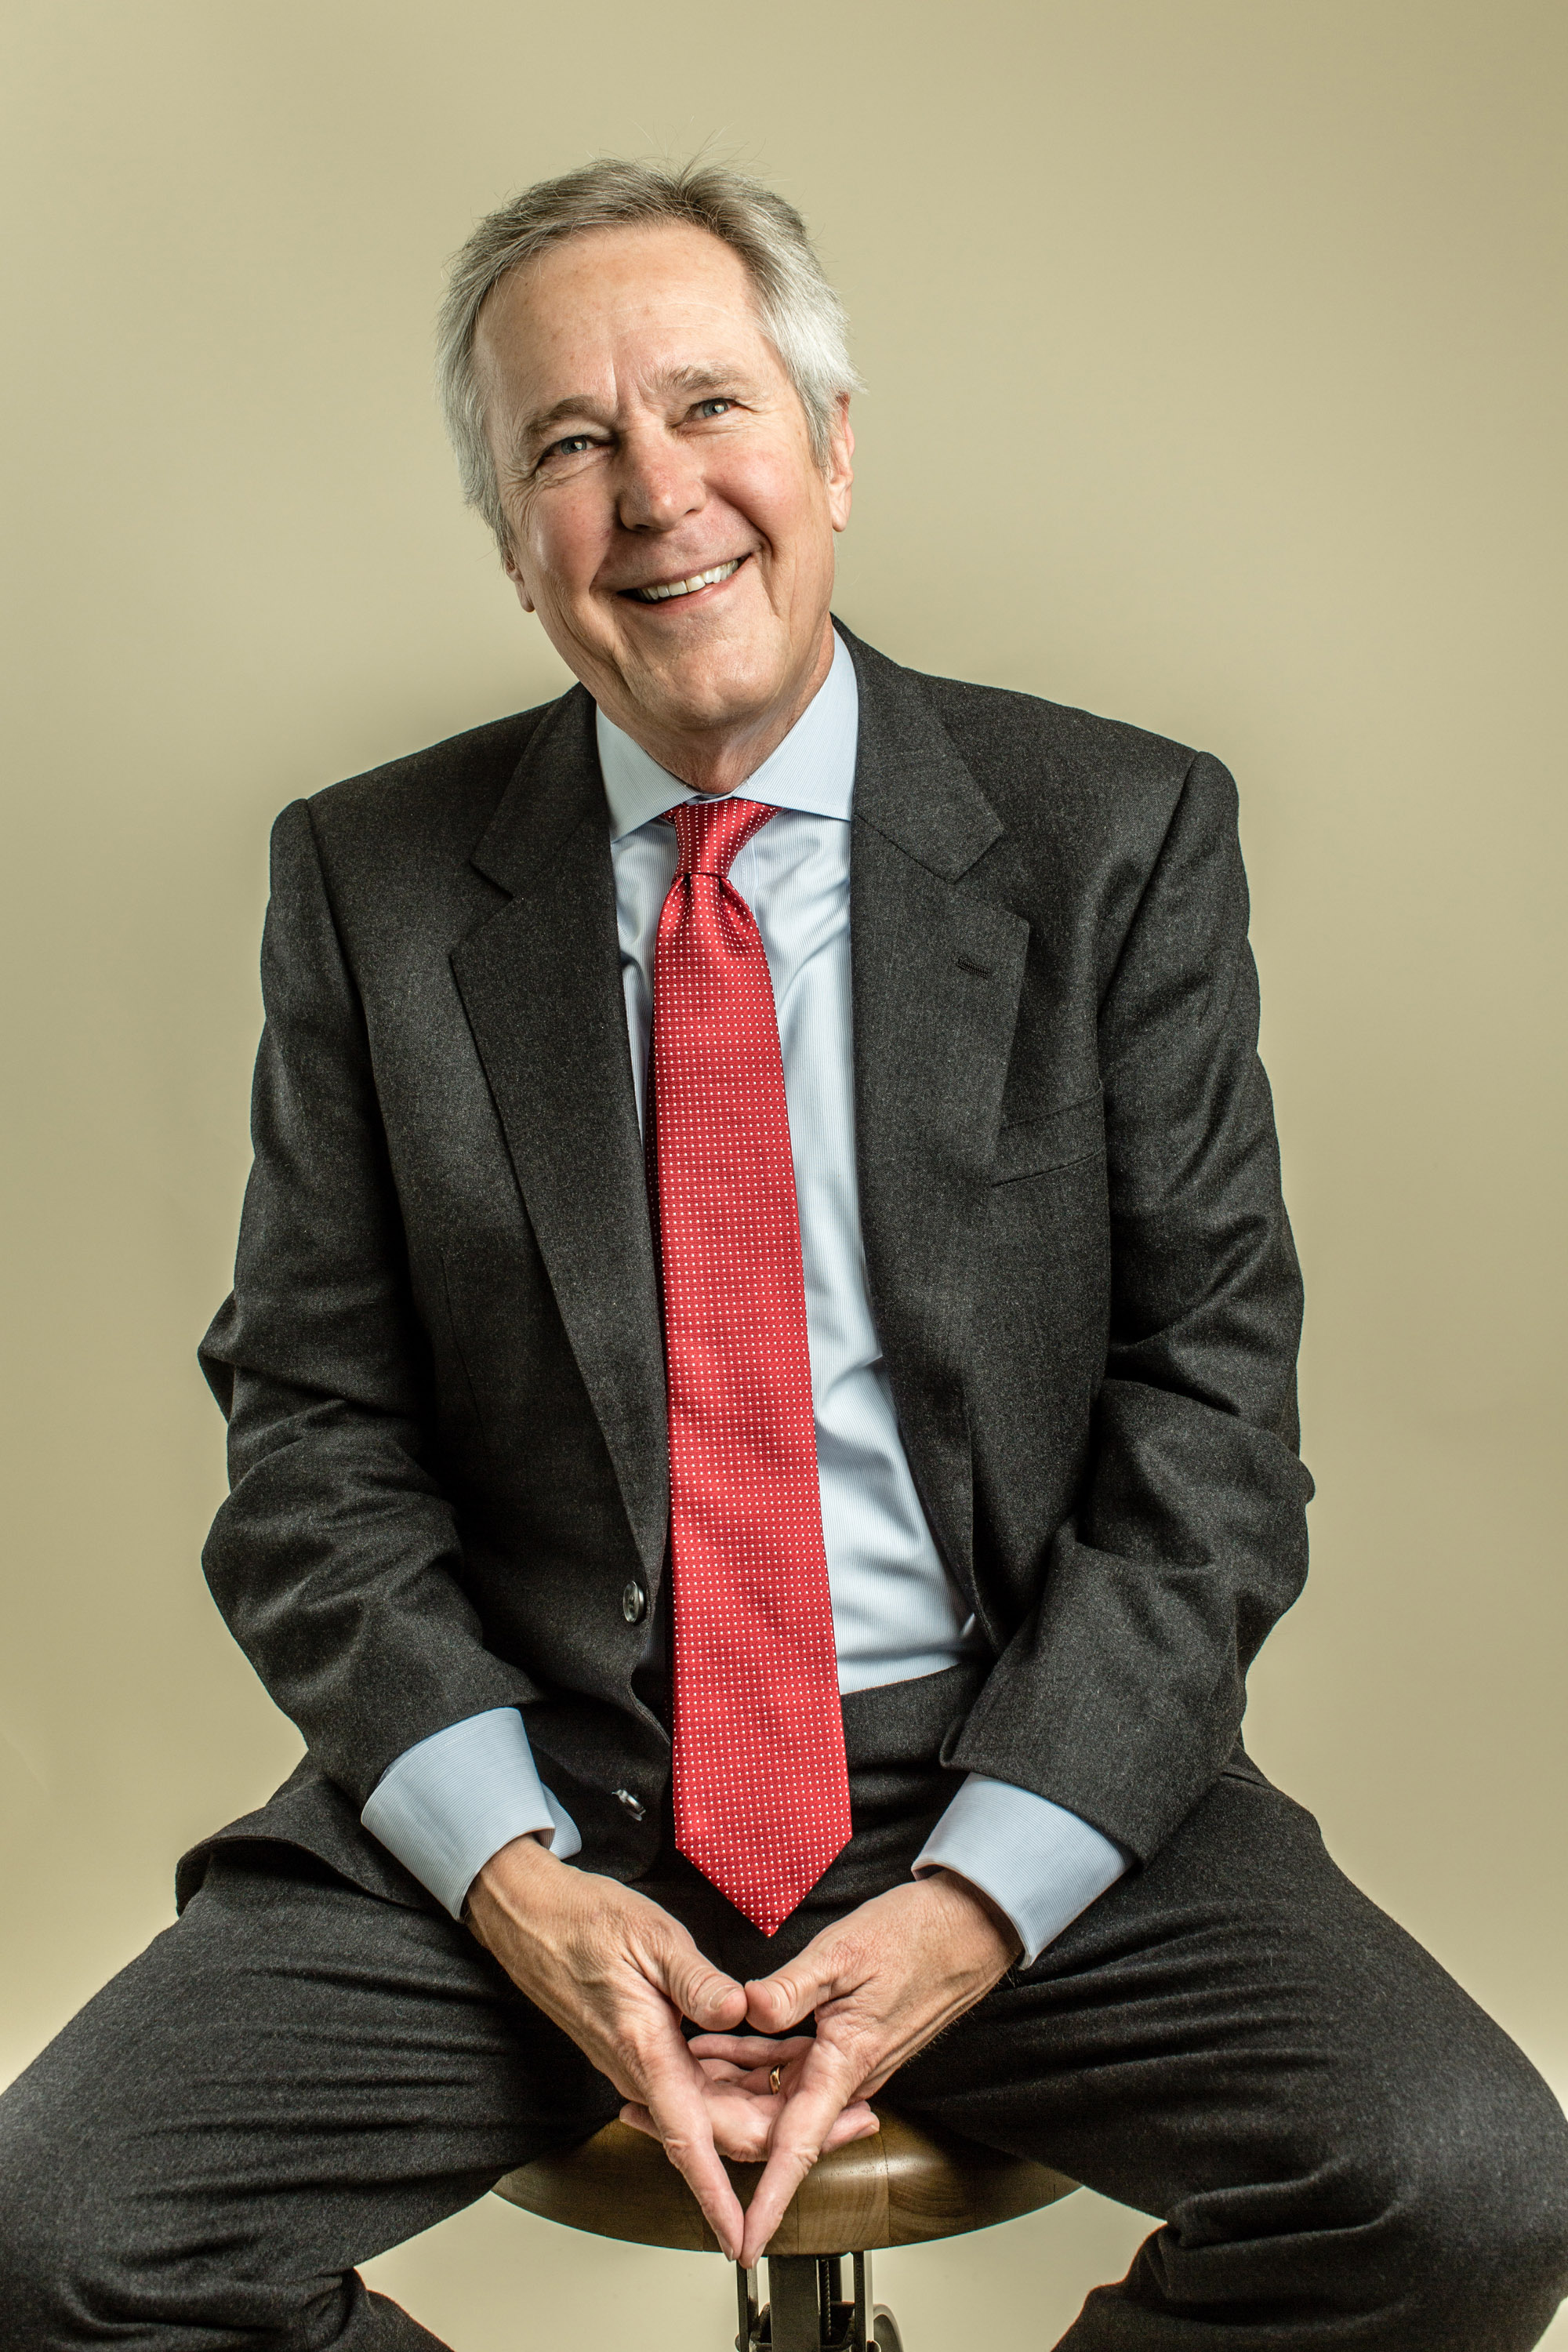 The Atlantic Monthly national correspondent James Fallows